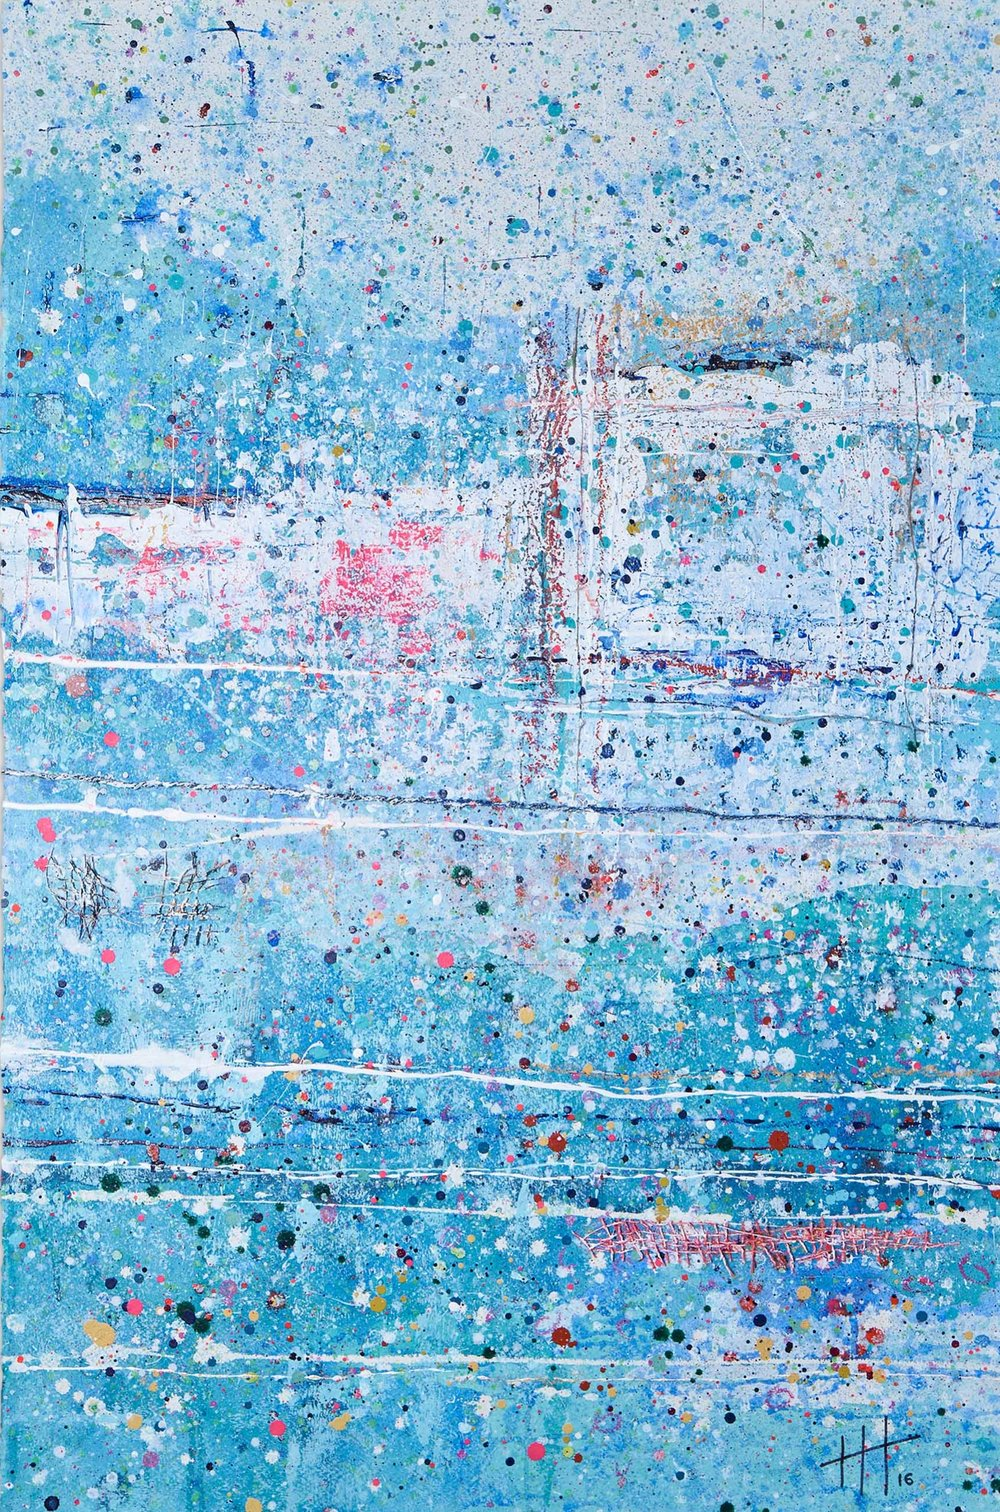 'Wild Swimming' Acrylic & Mixed Media / 129cm x 93cm (framed) SOLD